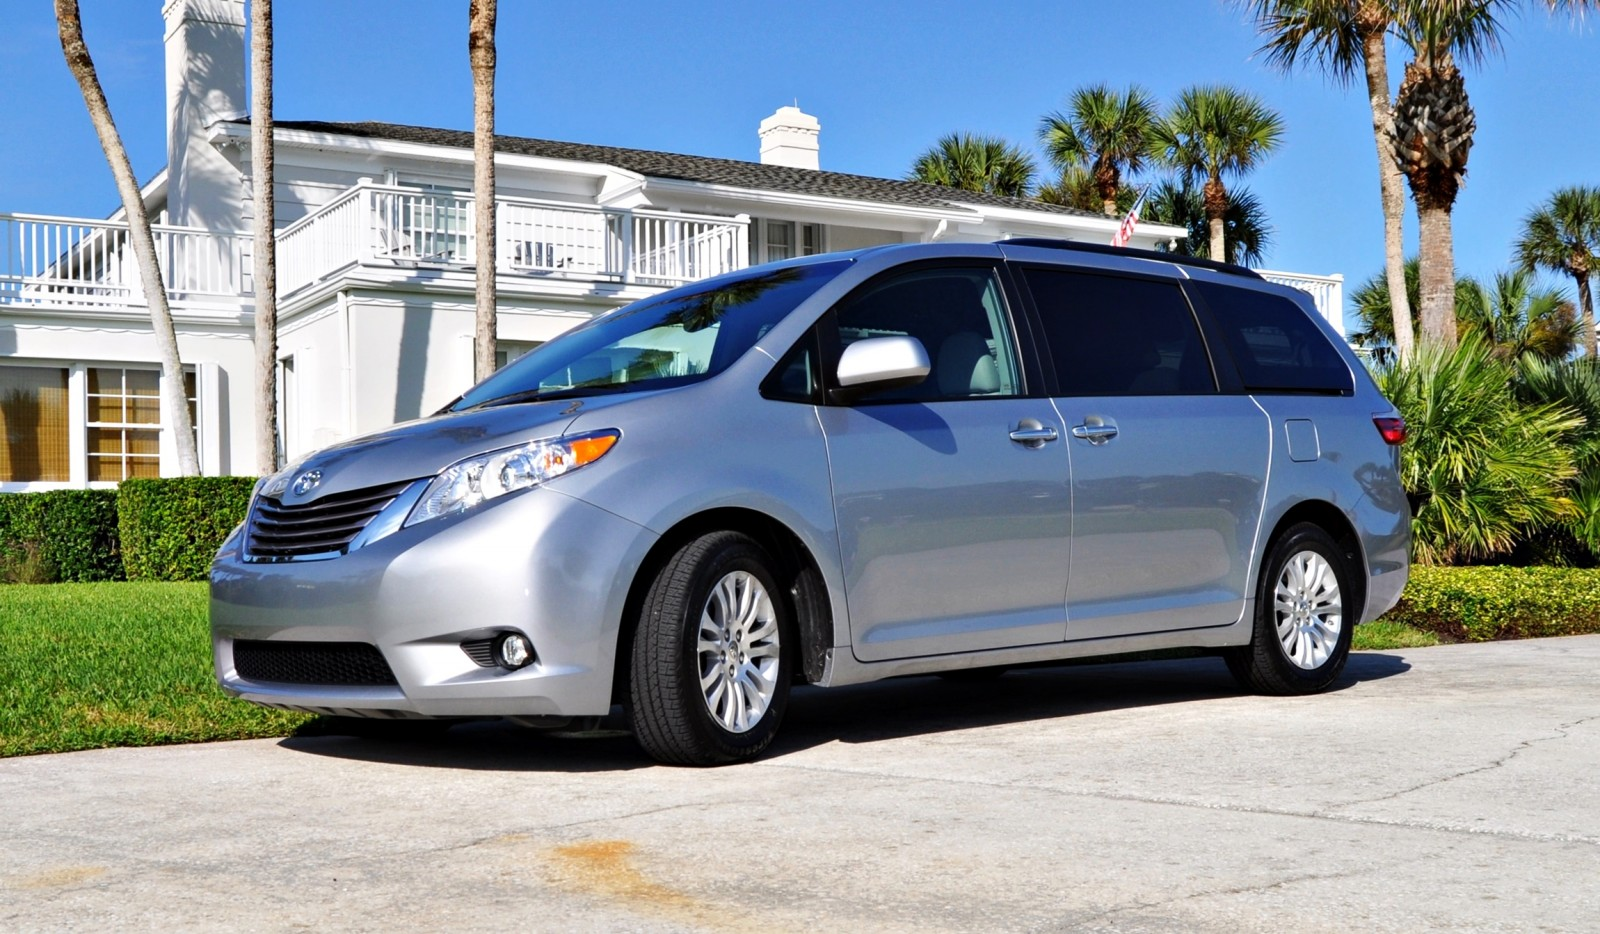 Honda odyssey vs toyota sienna carsdirect for Honda vs toyota reliability